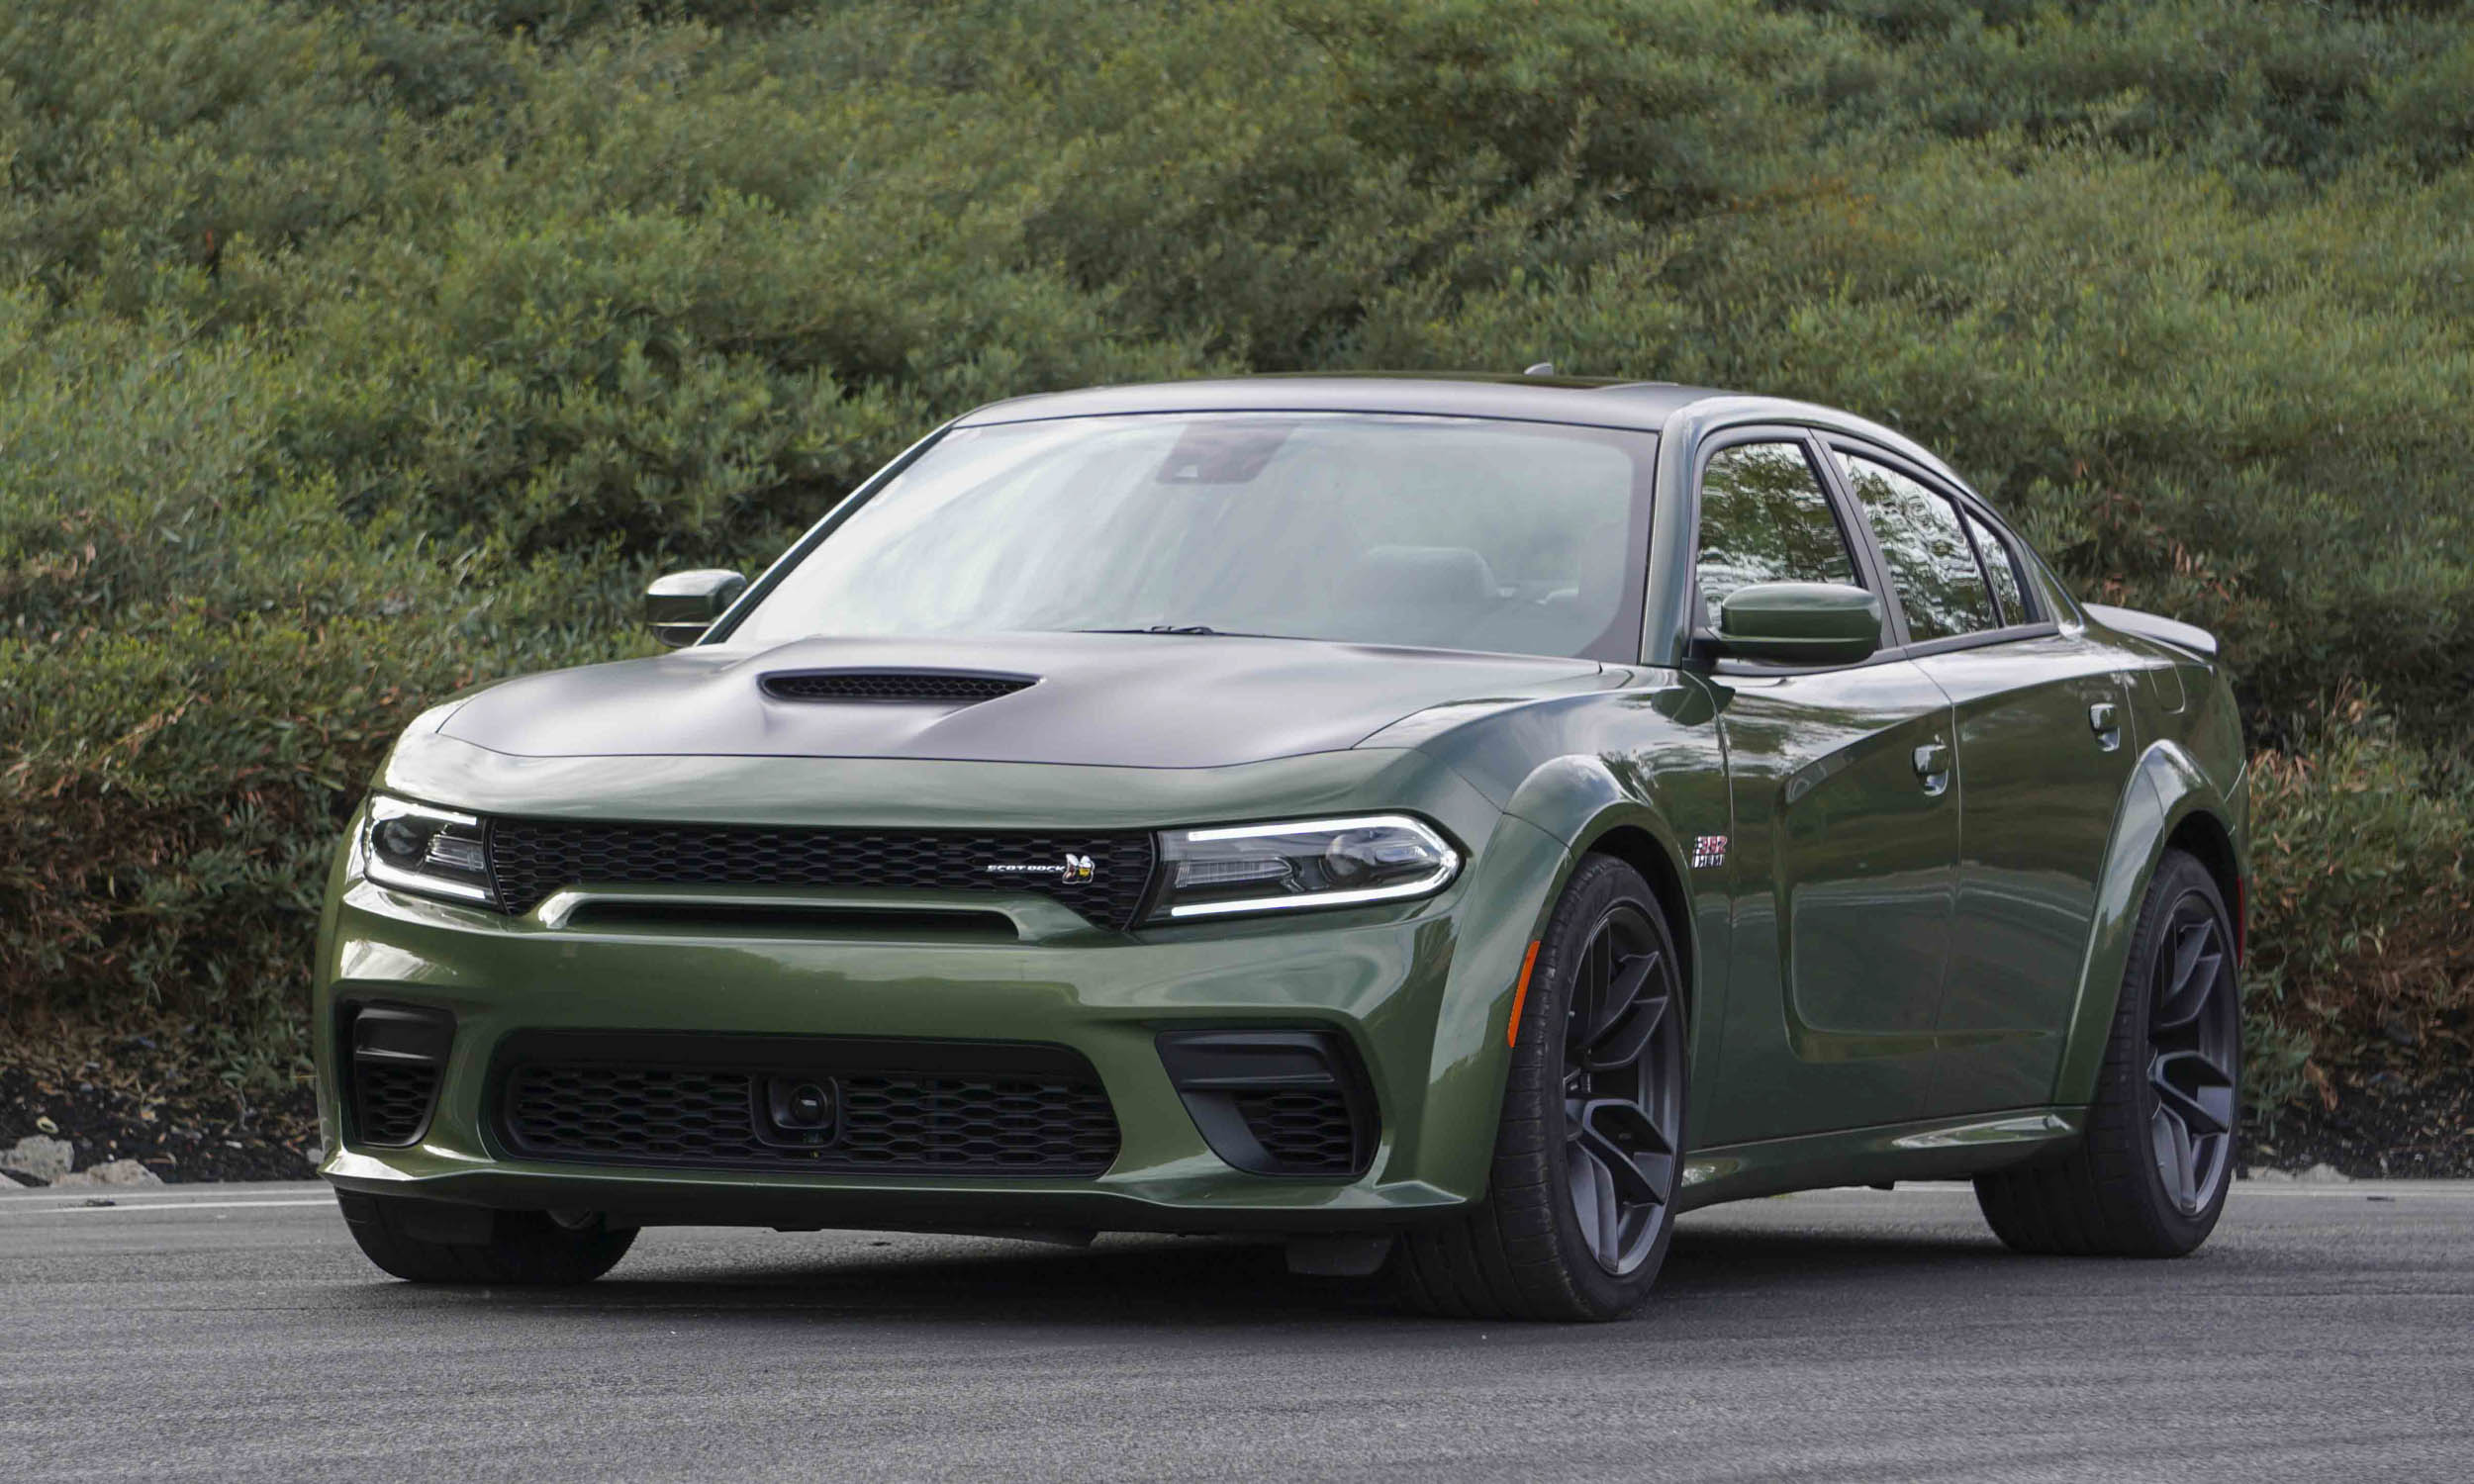 2020 Dodge Charger Srt Hellcat First Drive Review Our Auto Expert